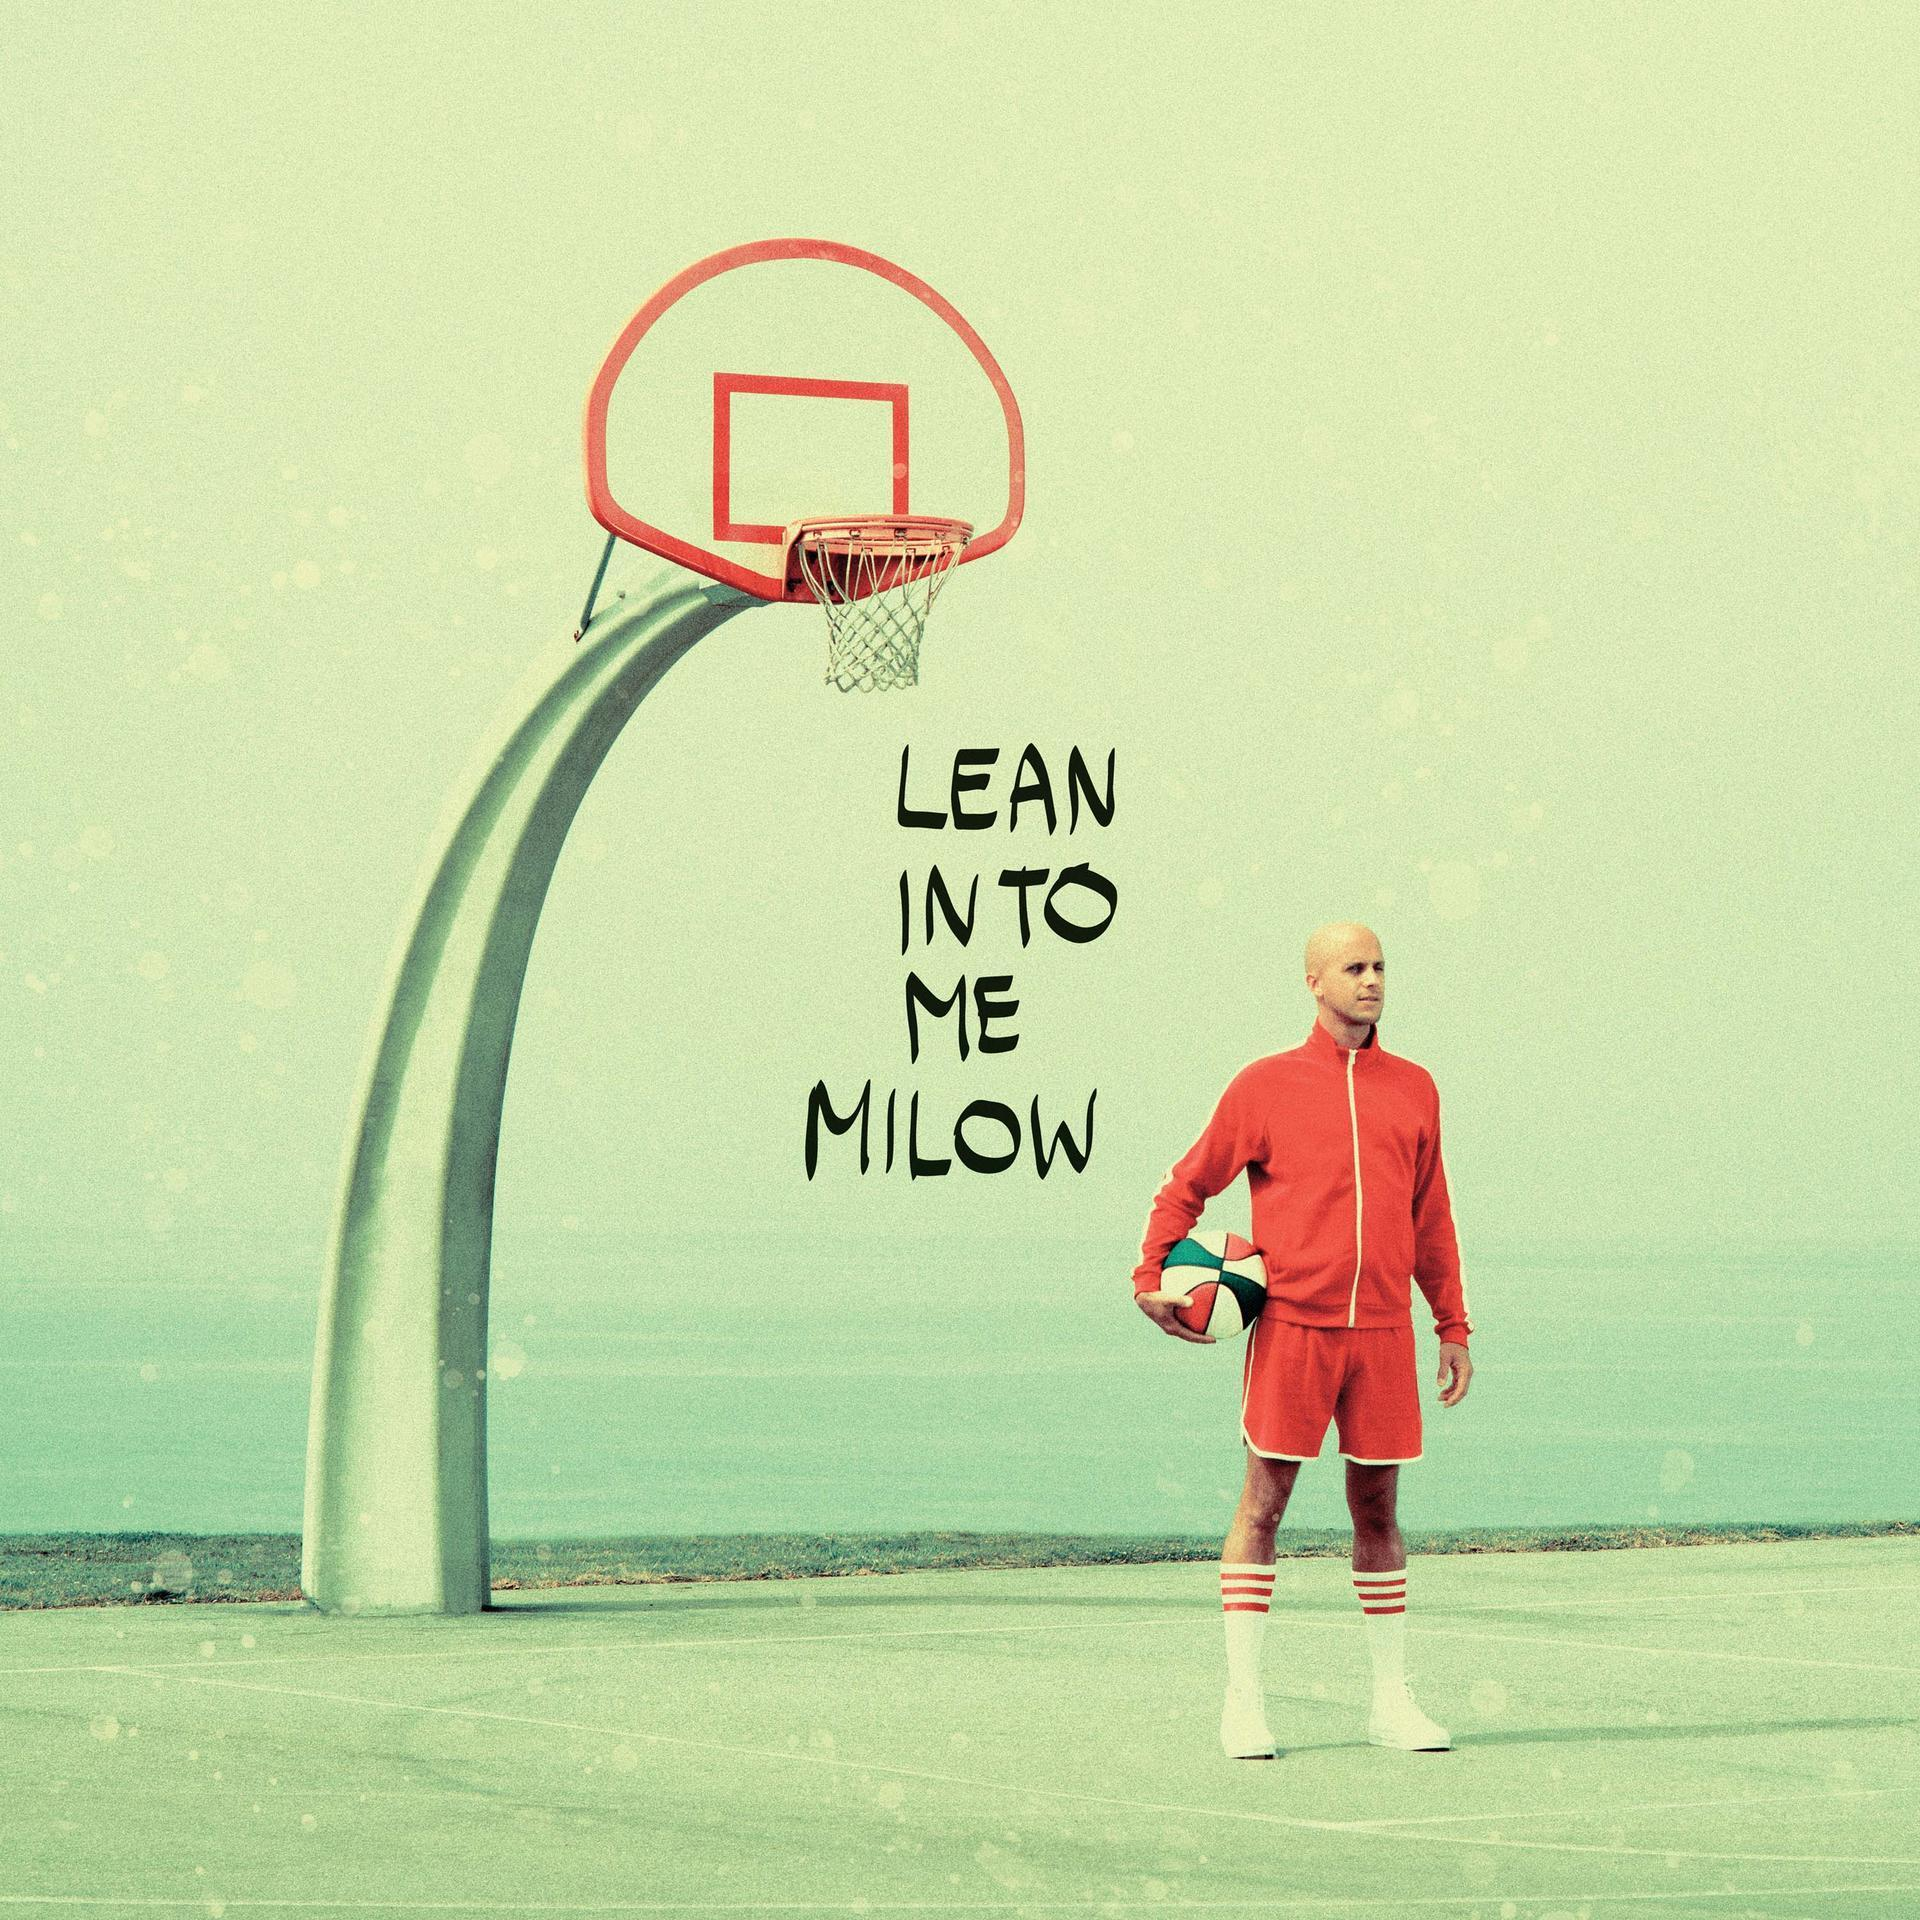 Lean Into Me (Milow) für 19,99 Euro